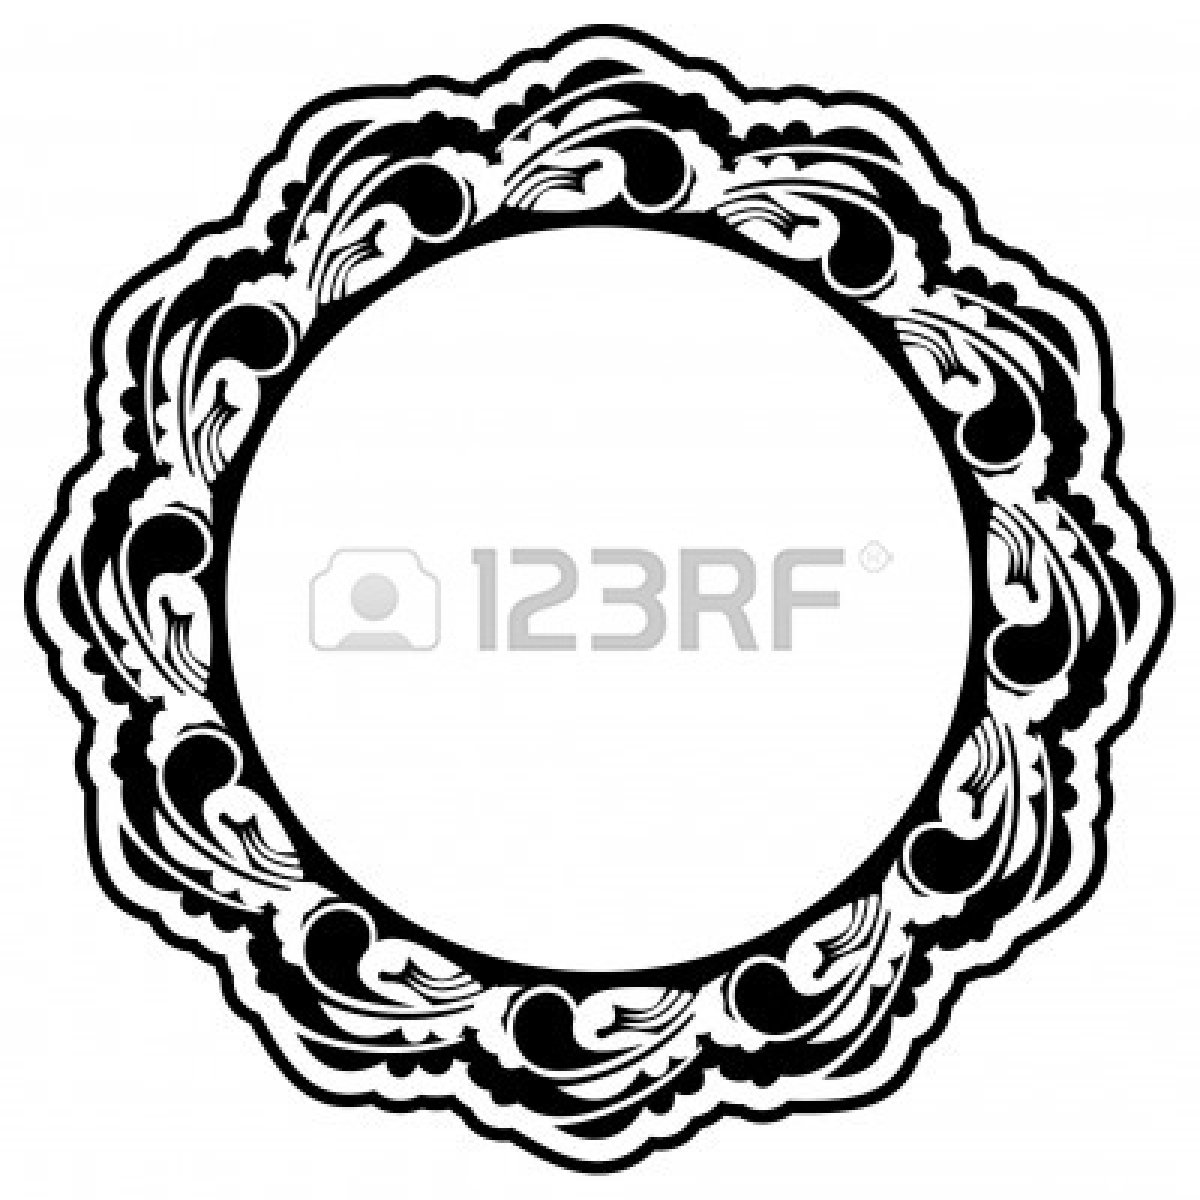 Victorian at getdrawings com. Chain clipart silhouette